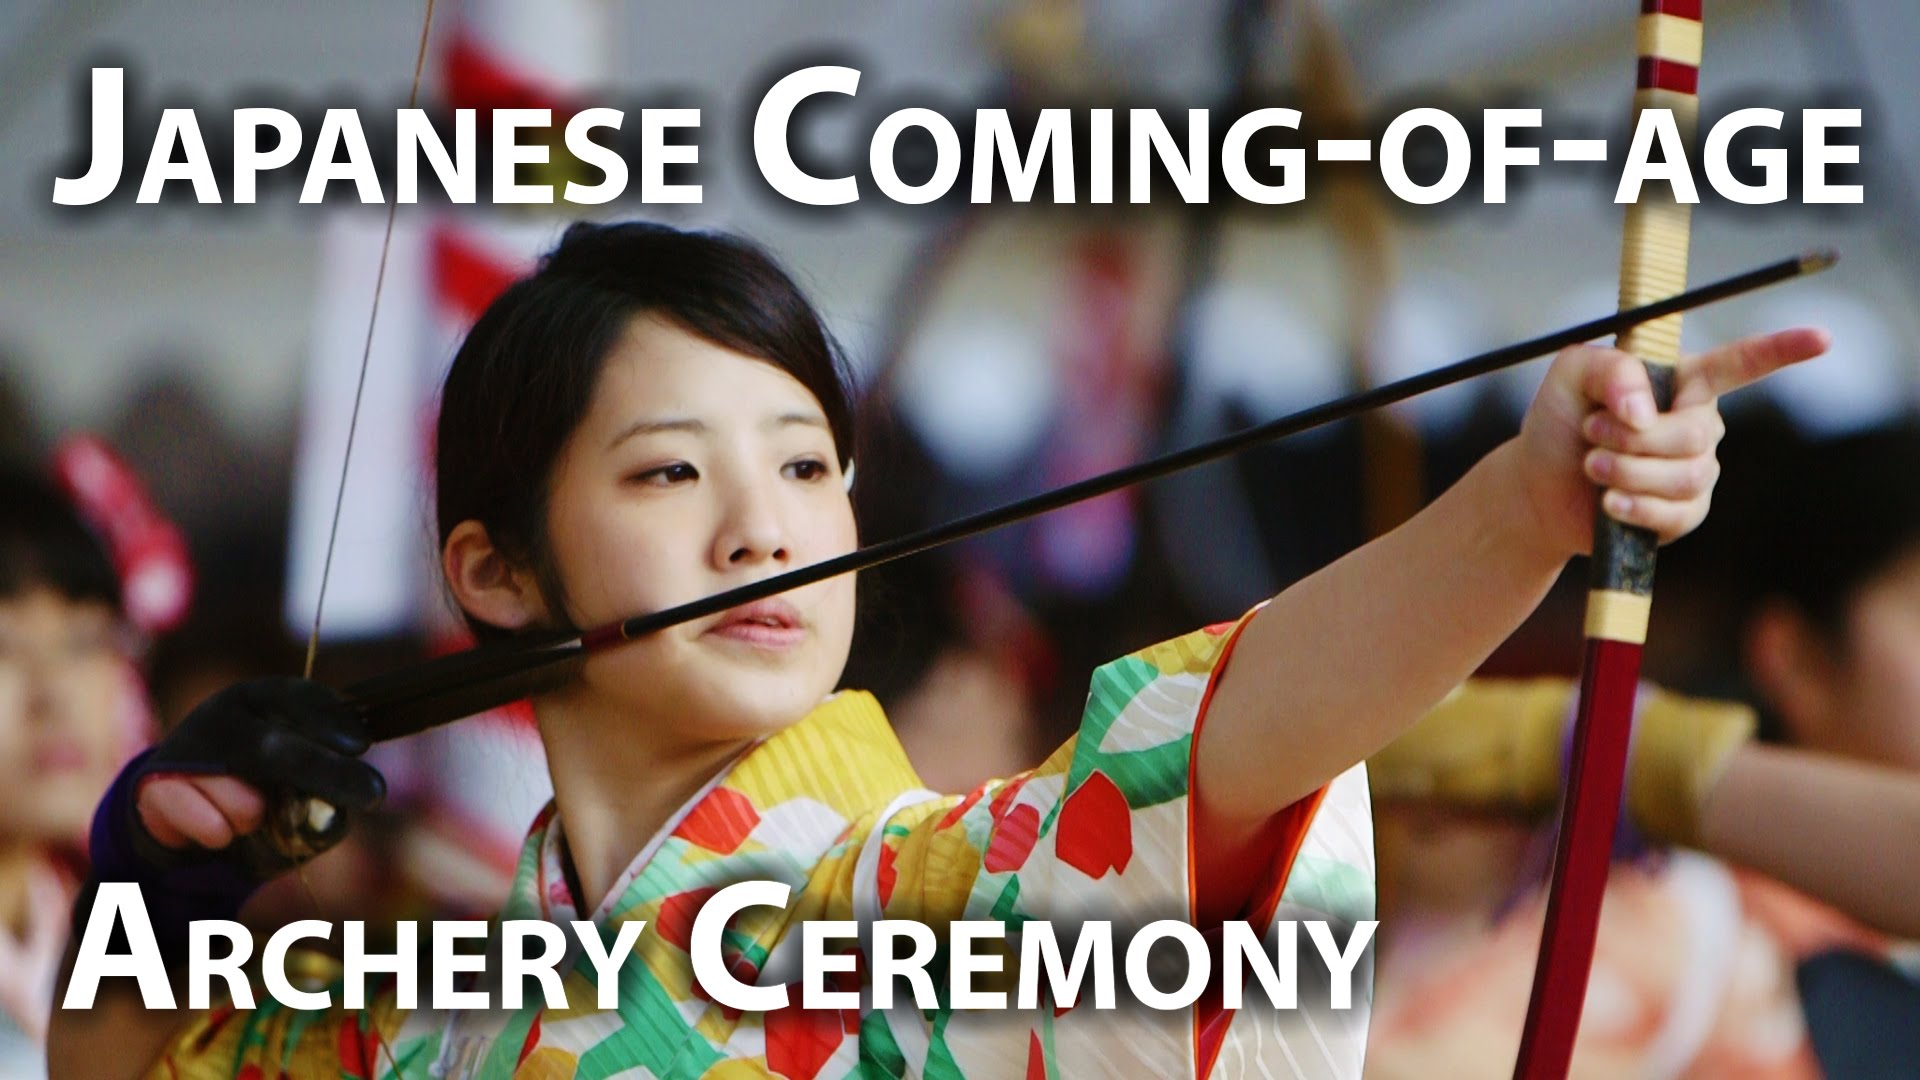 Japanese girls in Archery Ceremony